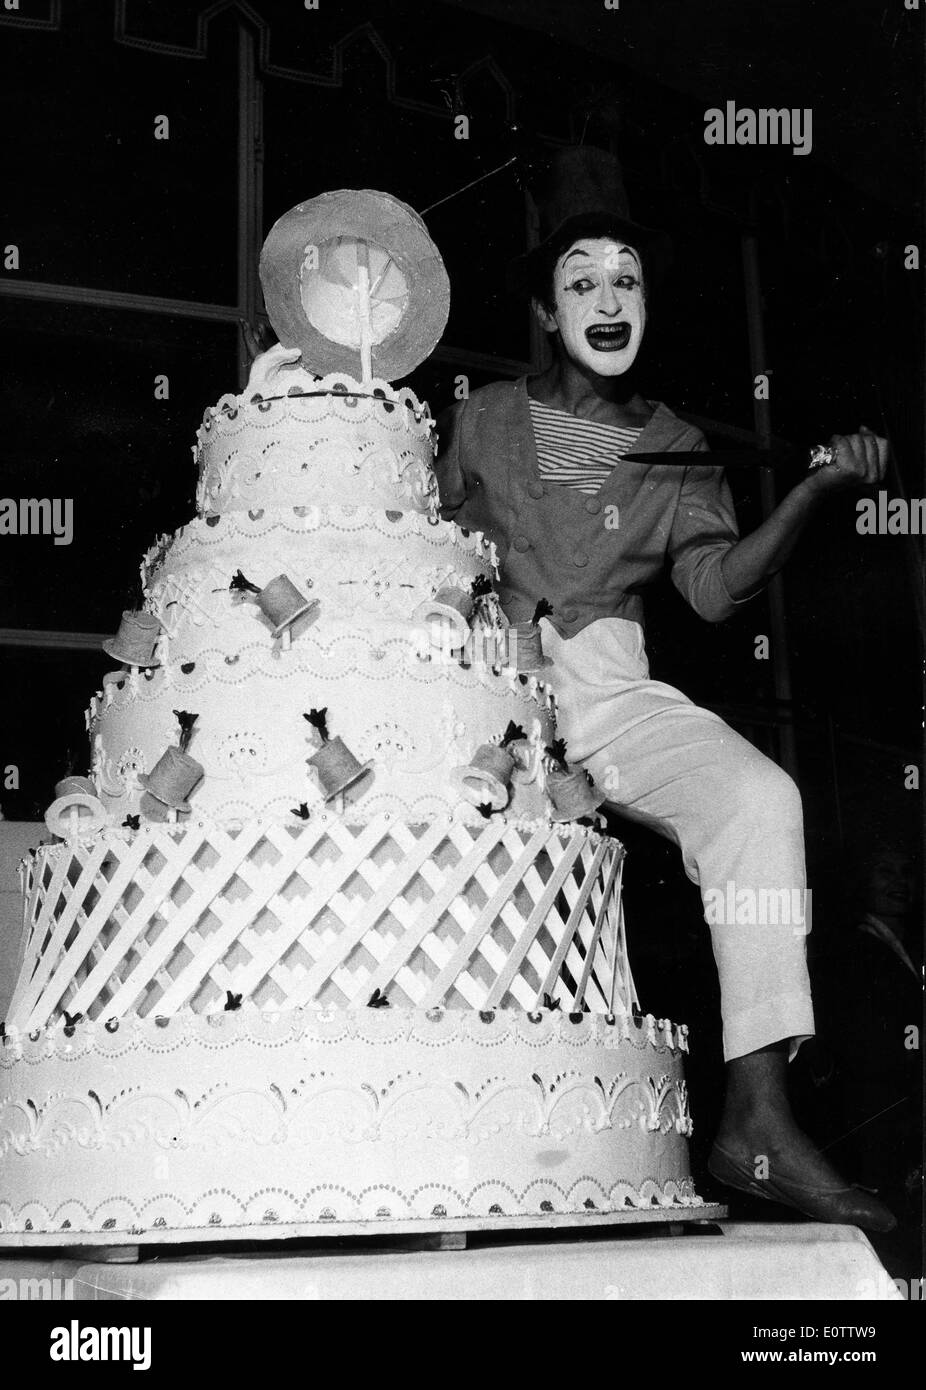 French mime Marcel Marceau cutting a cake - Stock Image